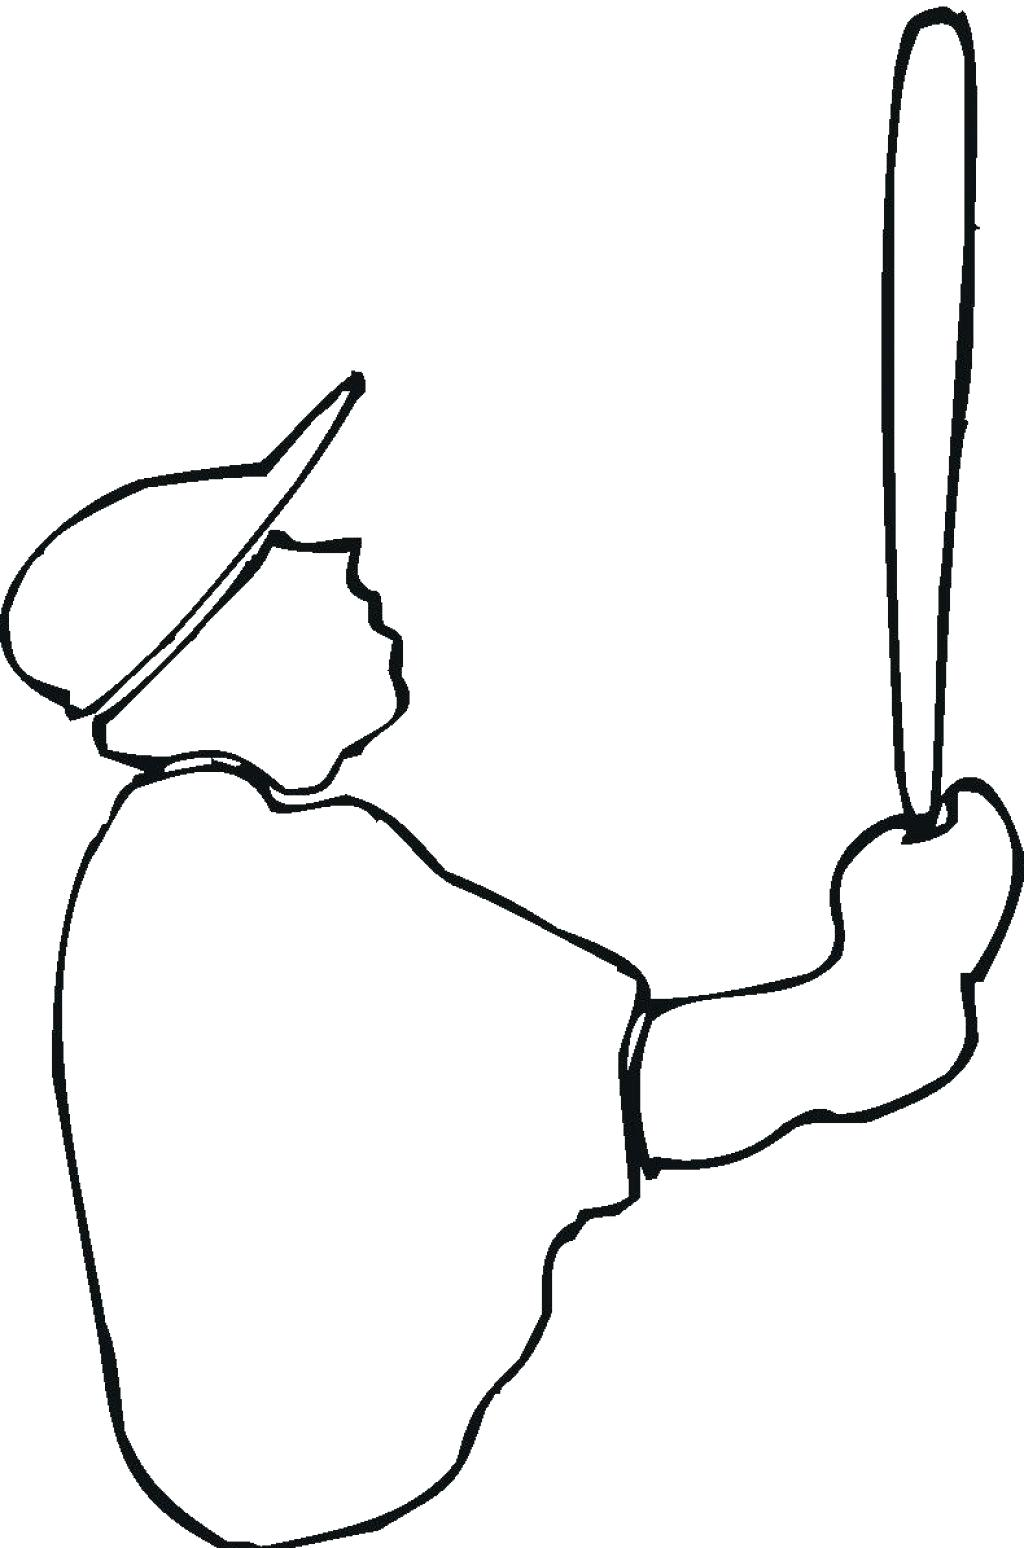 Outline Of A Person